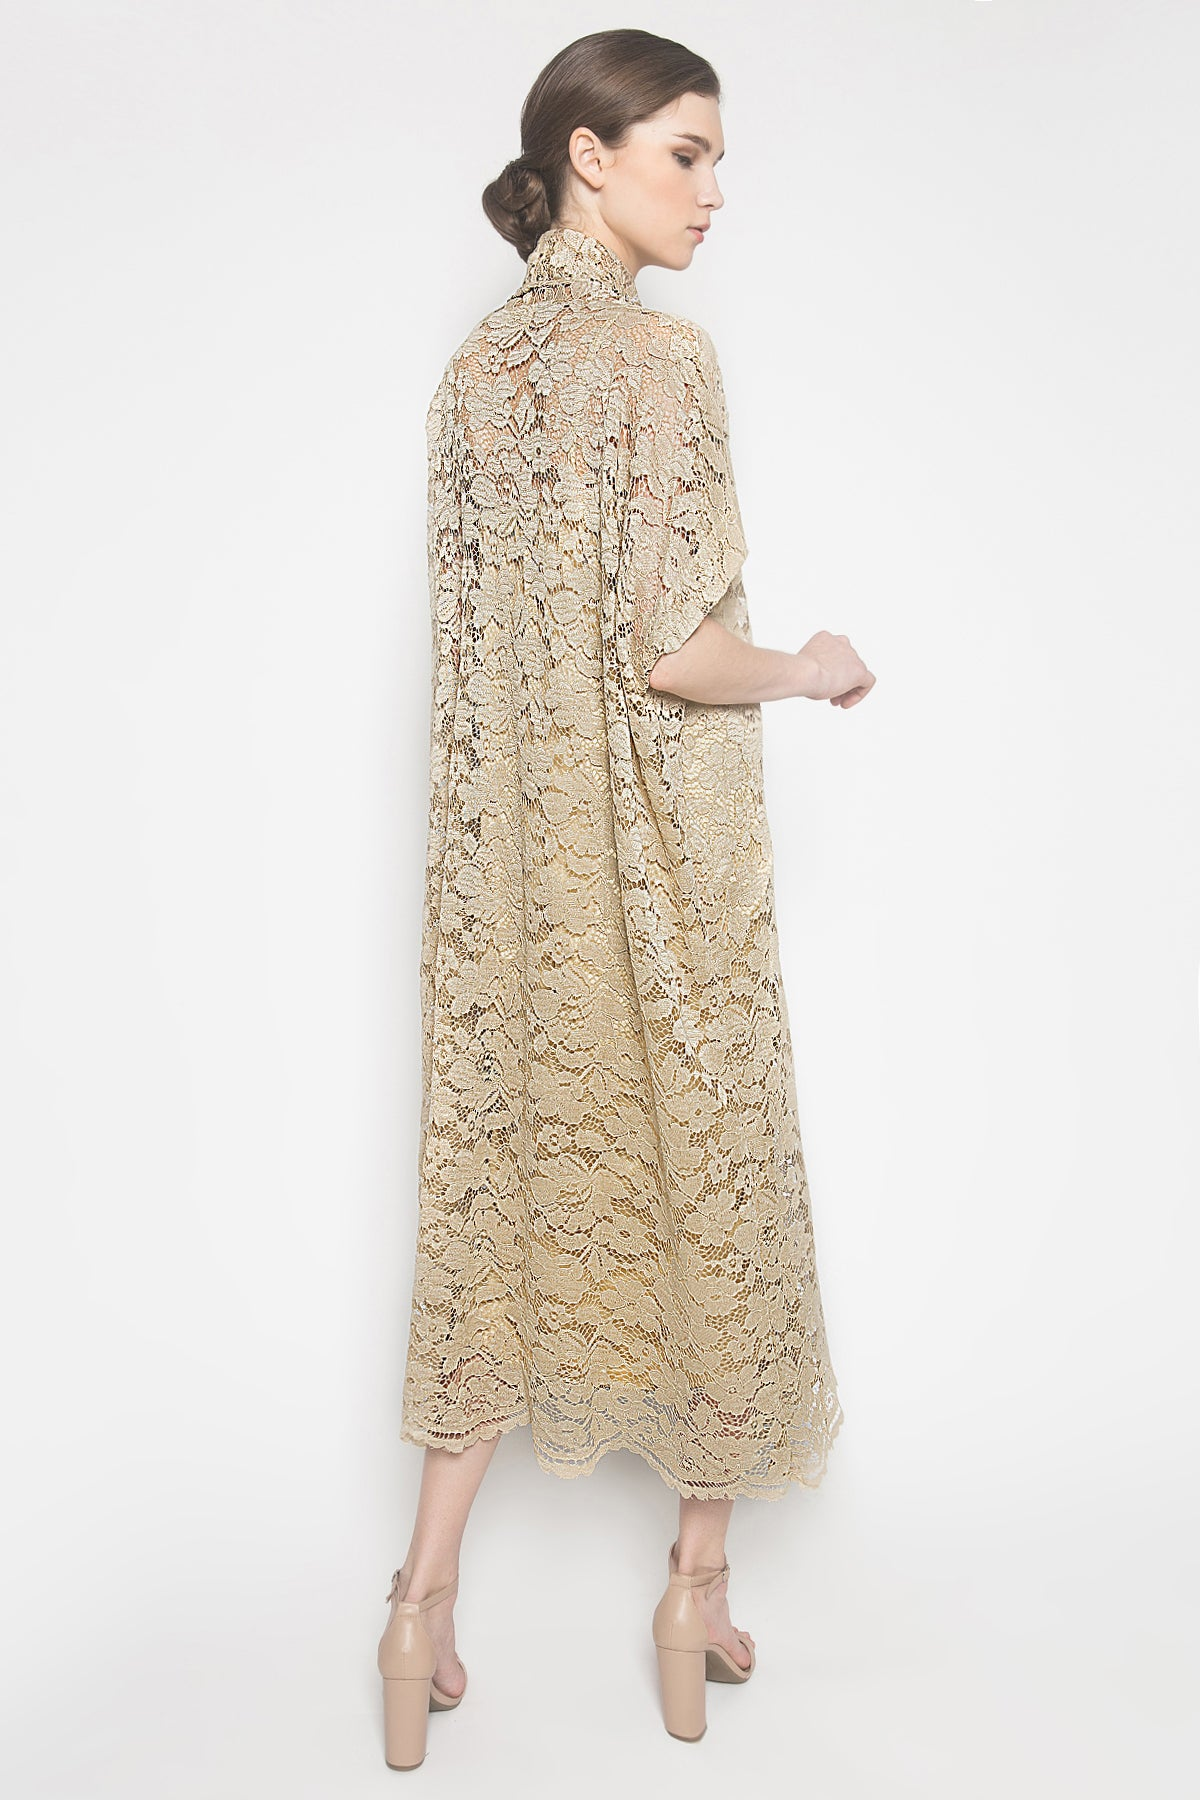 Khaula Dress in Cream